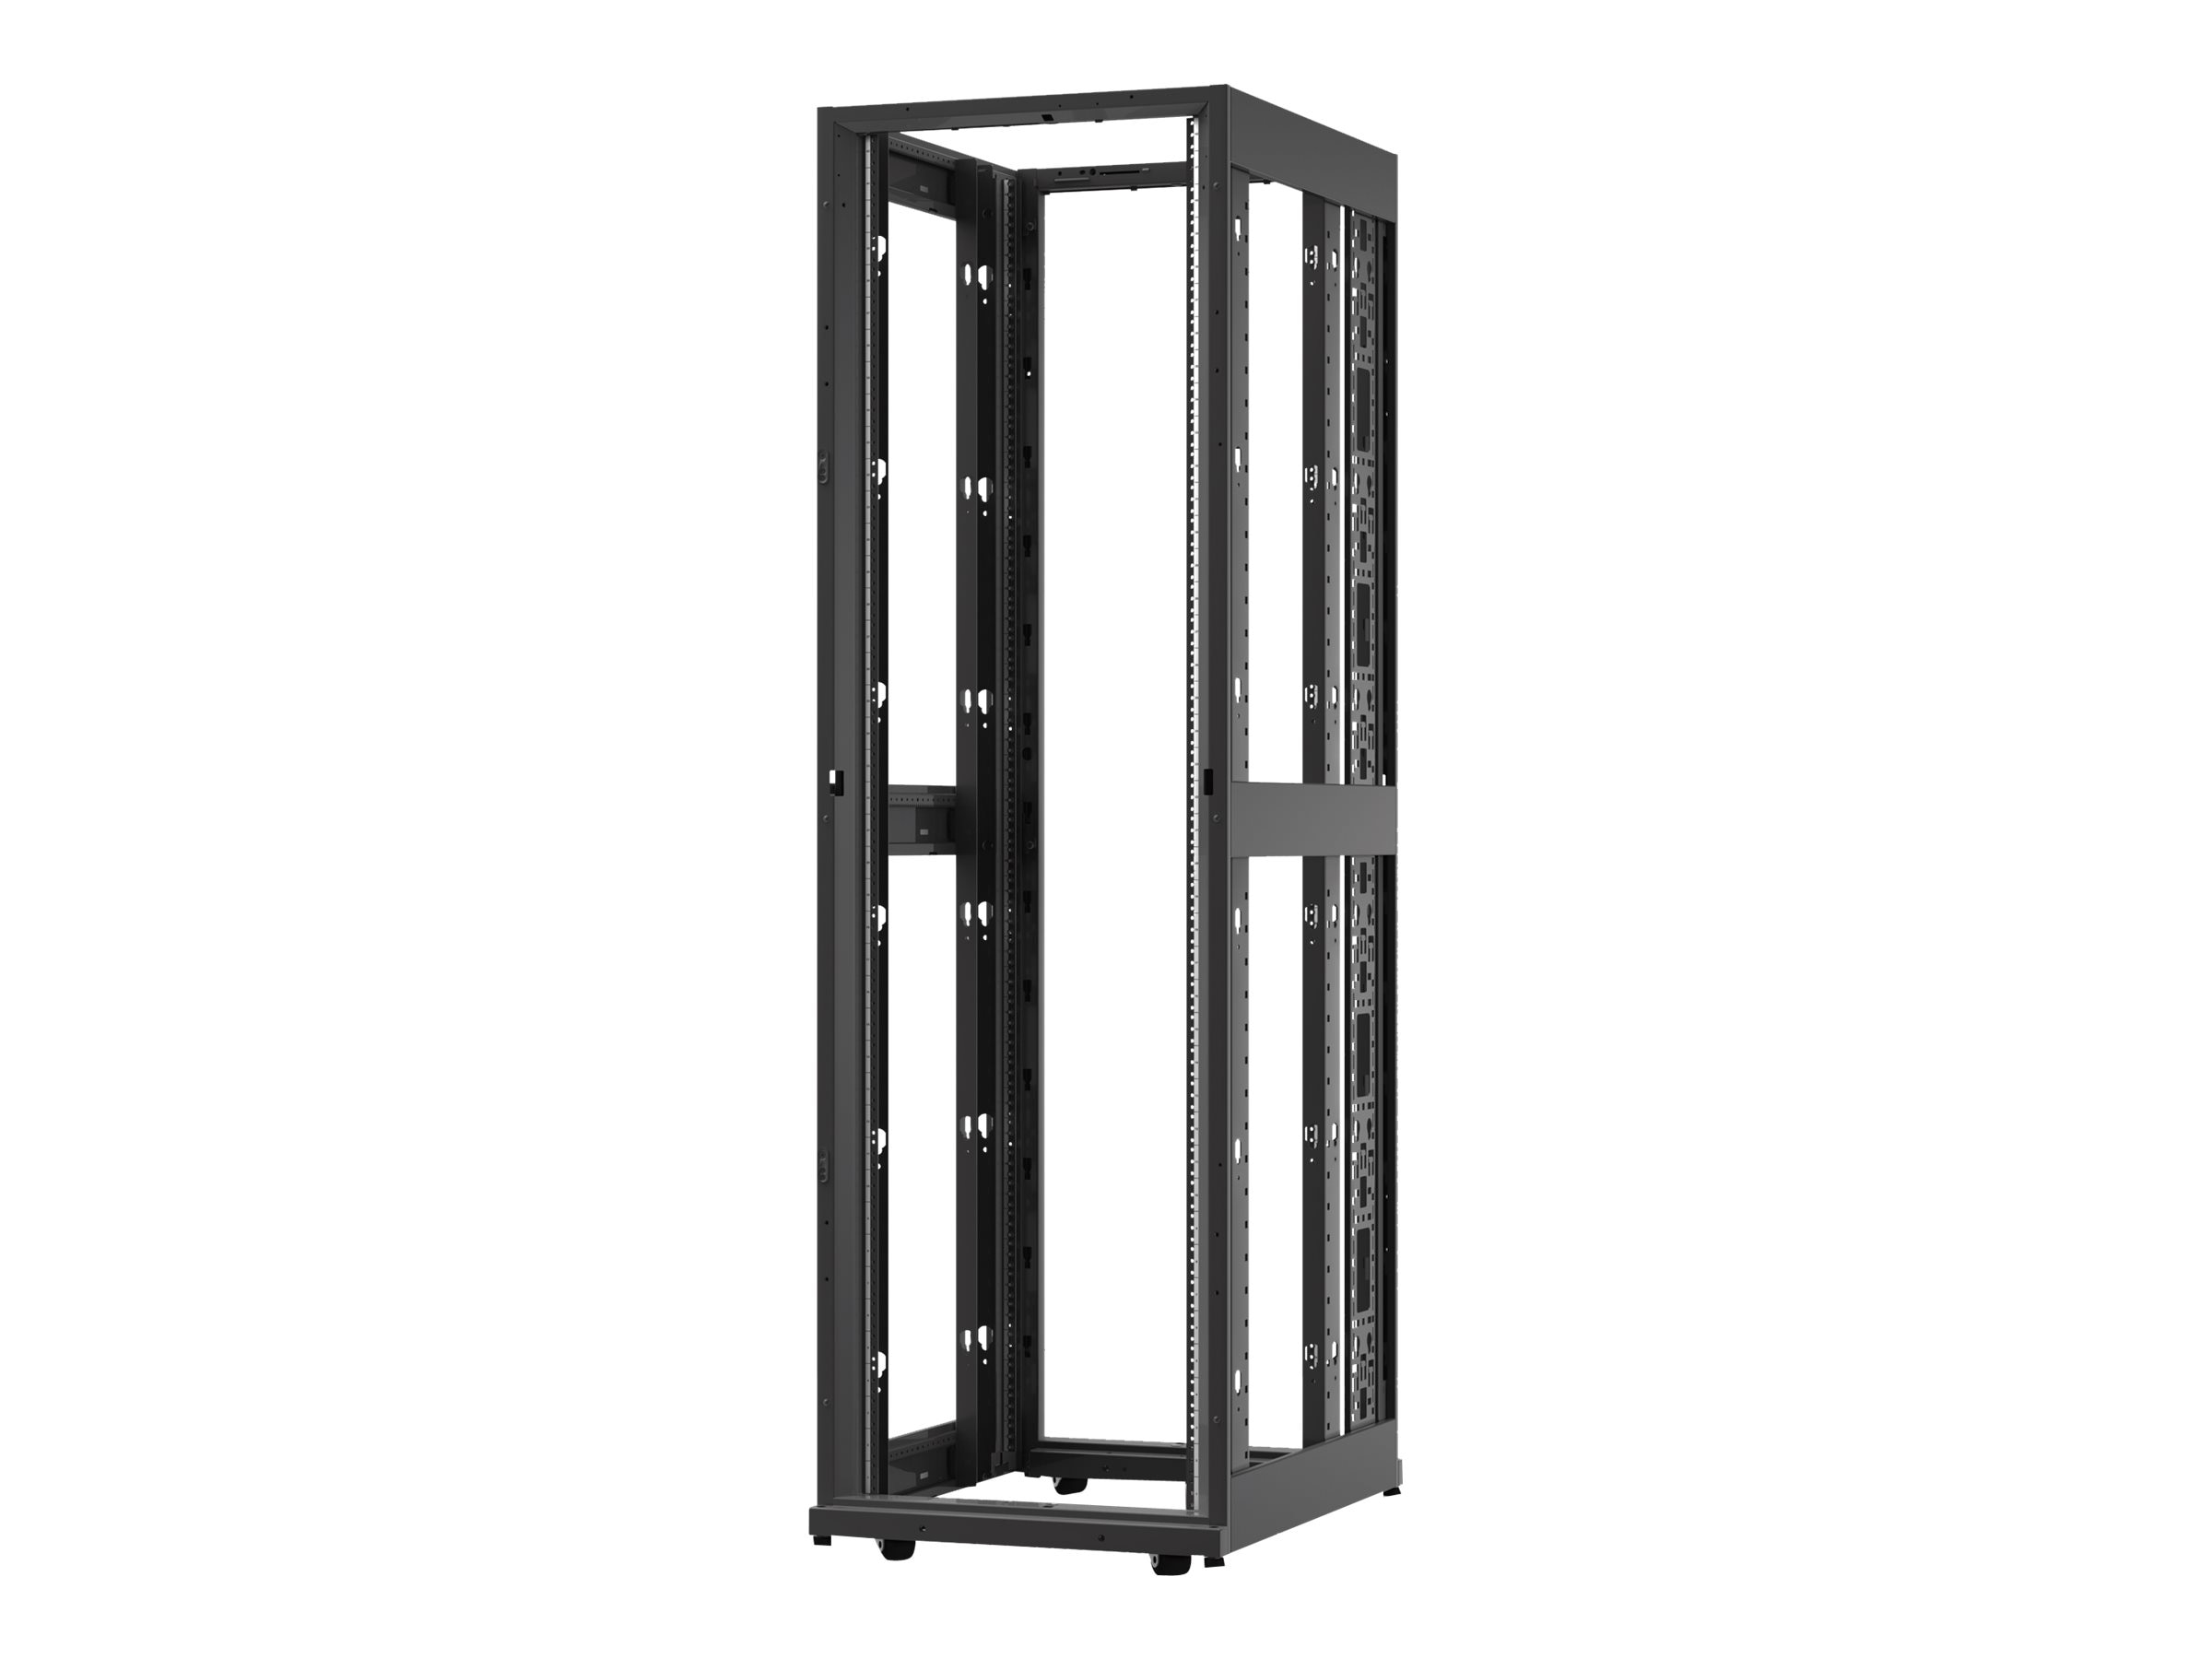 APC NetShelter AV 42U 600mm W x 825mm D Enclosure, 10-32 Threaded Rails, No Sides Roof Doors, Black, AR3812, 12183553, Racks & Cabinets